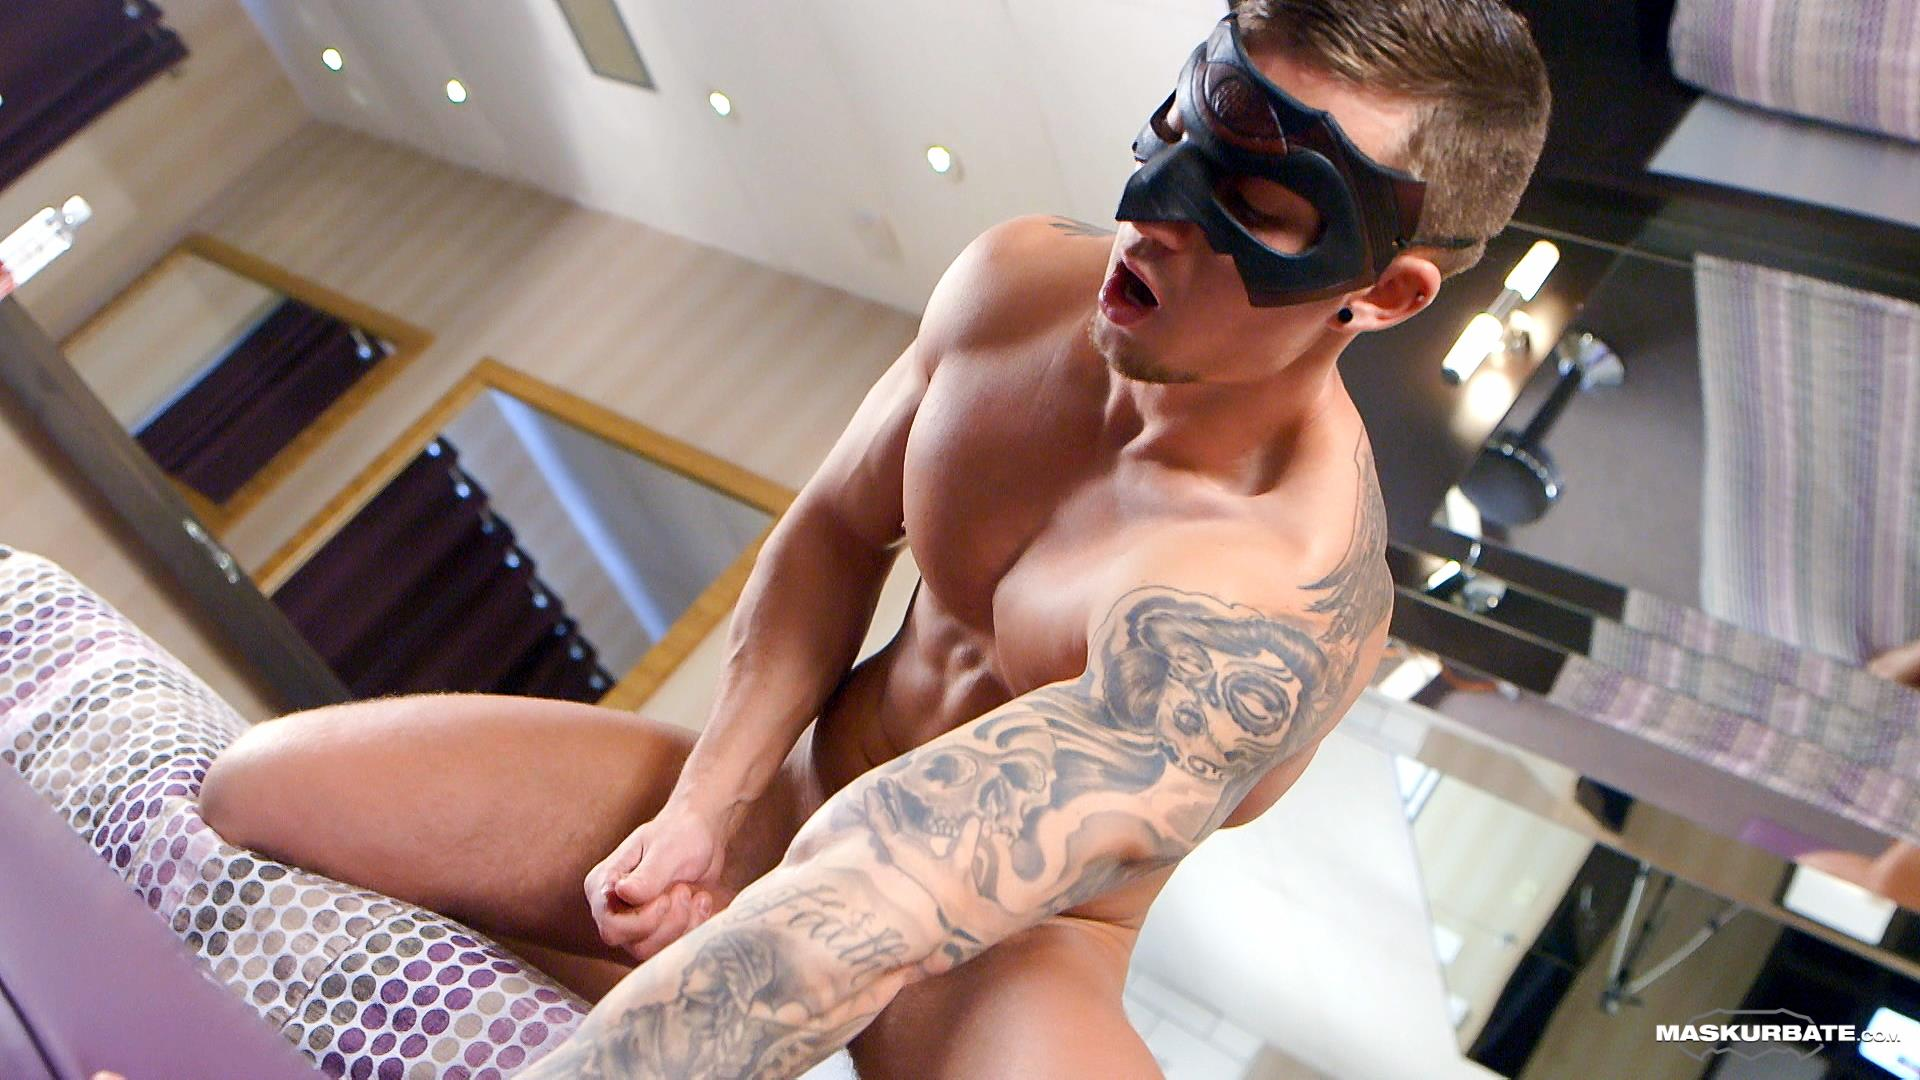 Maskurbate-Vince-Smooth-Muscle-Hunk-With-A-Big-Uncut-Cock-Jerking-Off-12 Smooth Tatted Body Builder Jerks Off His Big 9